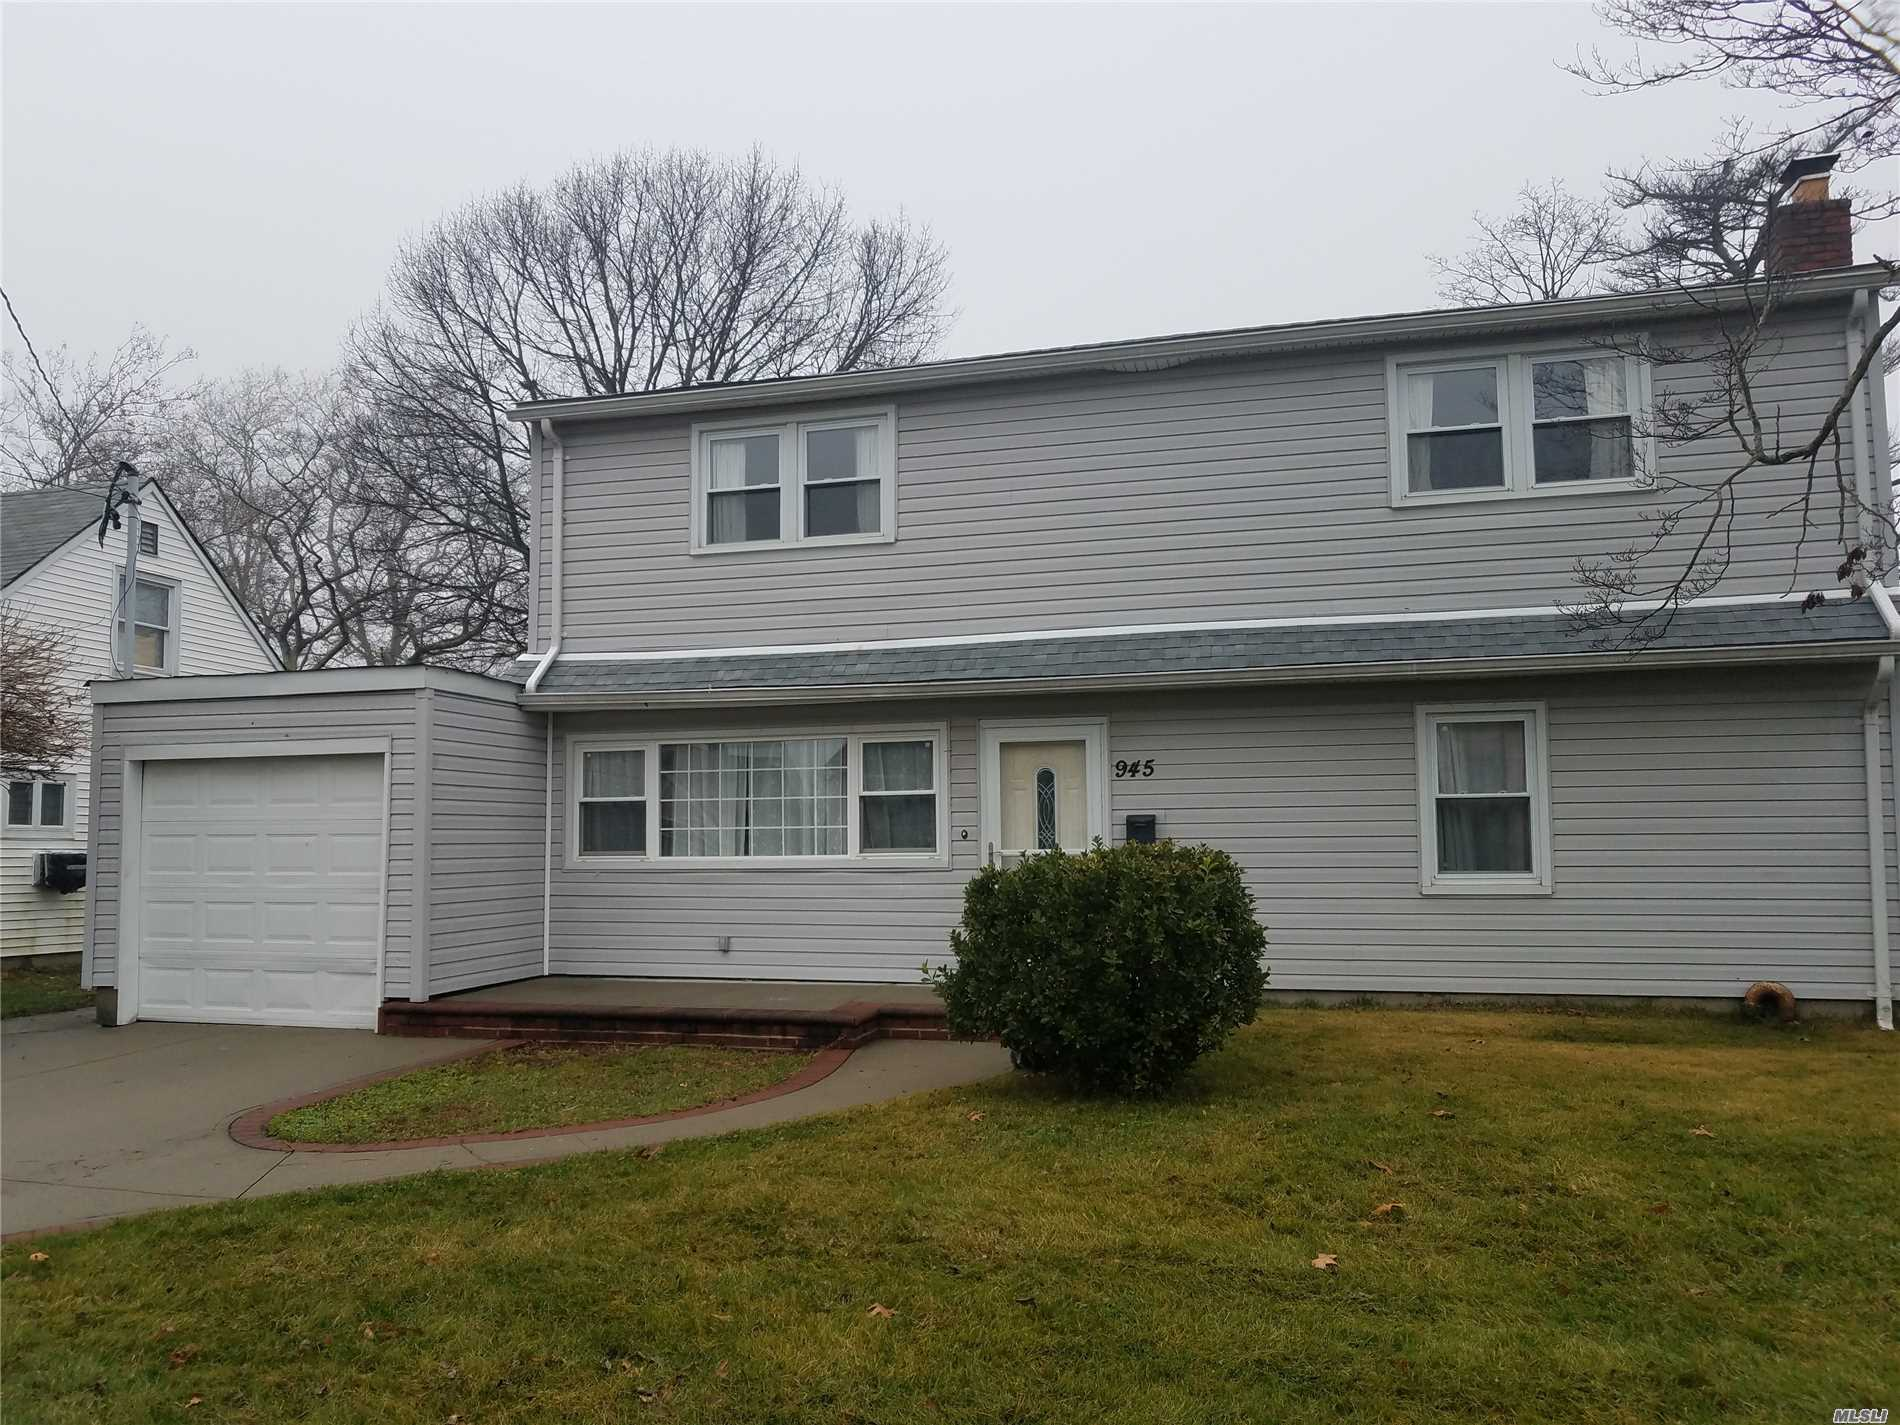 4 Bedroom, 2 Bath Colonial. Newly Updated Eat-In-Kitchen, Formal Dining Rm, Living Rm W/ Fireplace, Gleaming Hardwood Floors. Whole House Water Filtration System. 2Yr Old Roof. 1 Car Garage. Meadow Elementary School. Flood Ins Not Required.